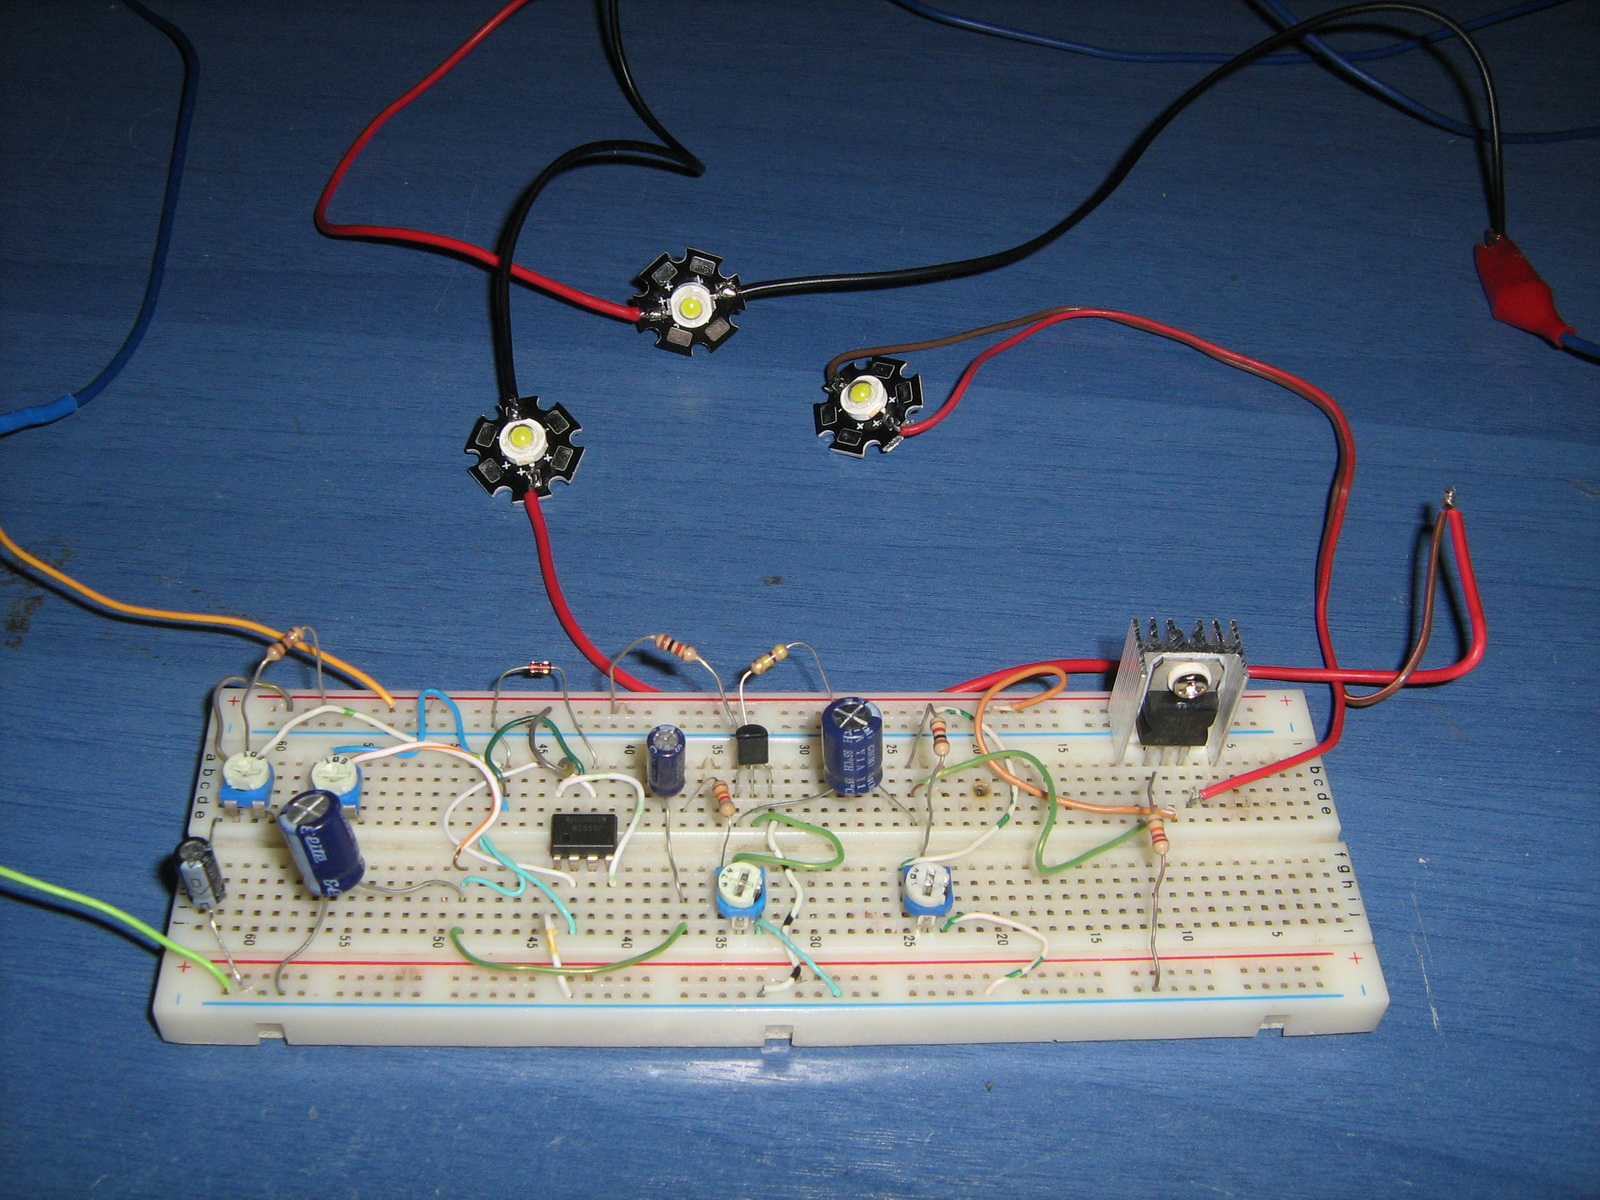 hight resolution of 555 led pulsing breathing circuit